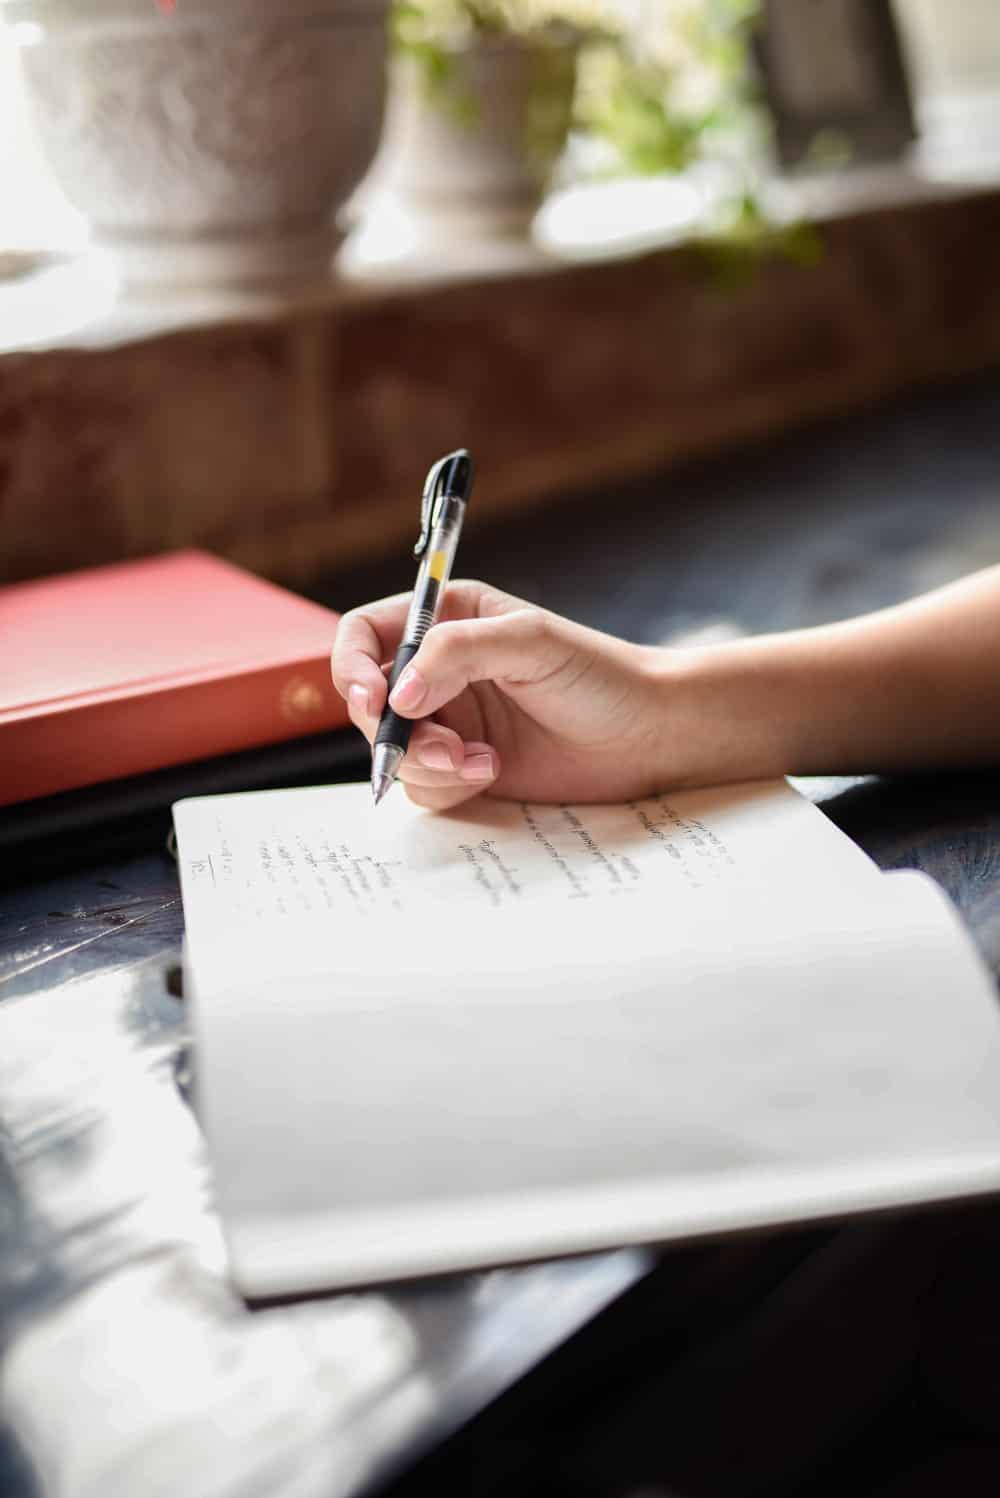 Journaling in cafe. Close up of hand holding a pen writing in notebook.